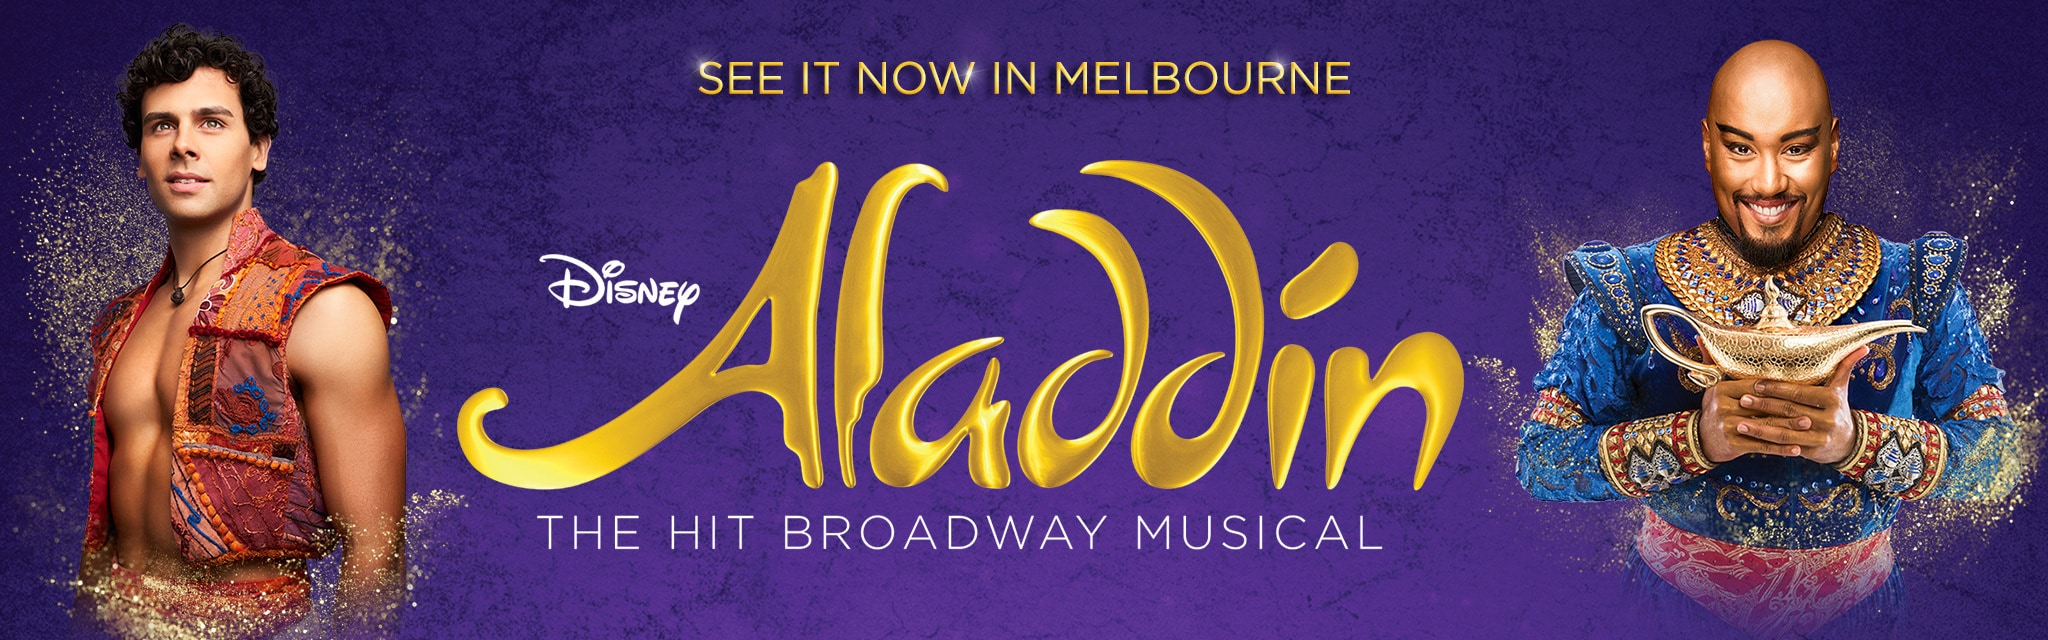 Live Shows AU - Aladdin Ticketing Site - See It Now In Melbourne